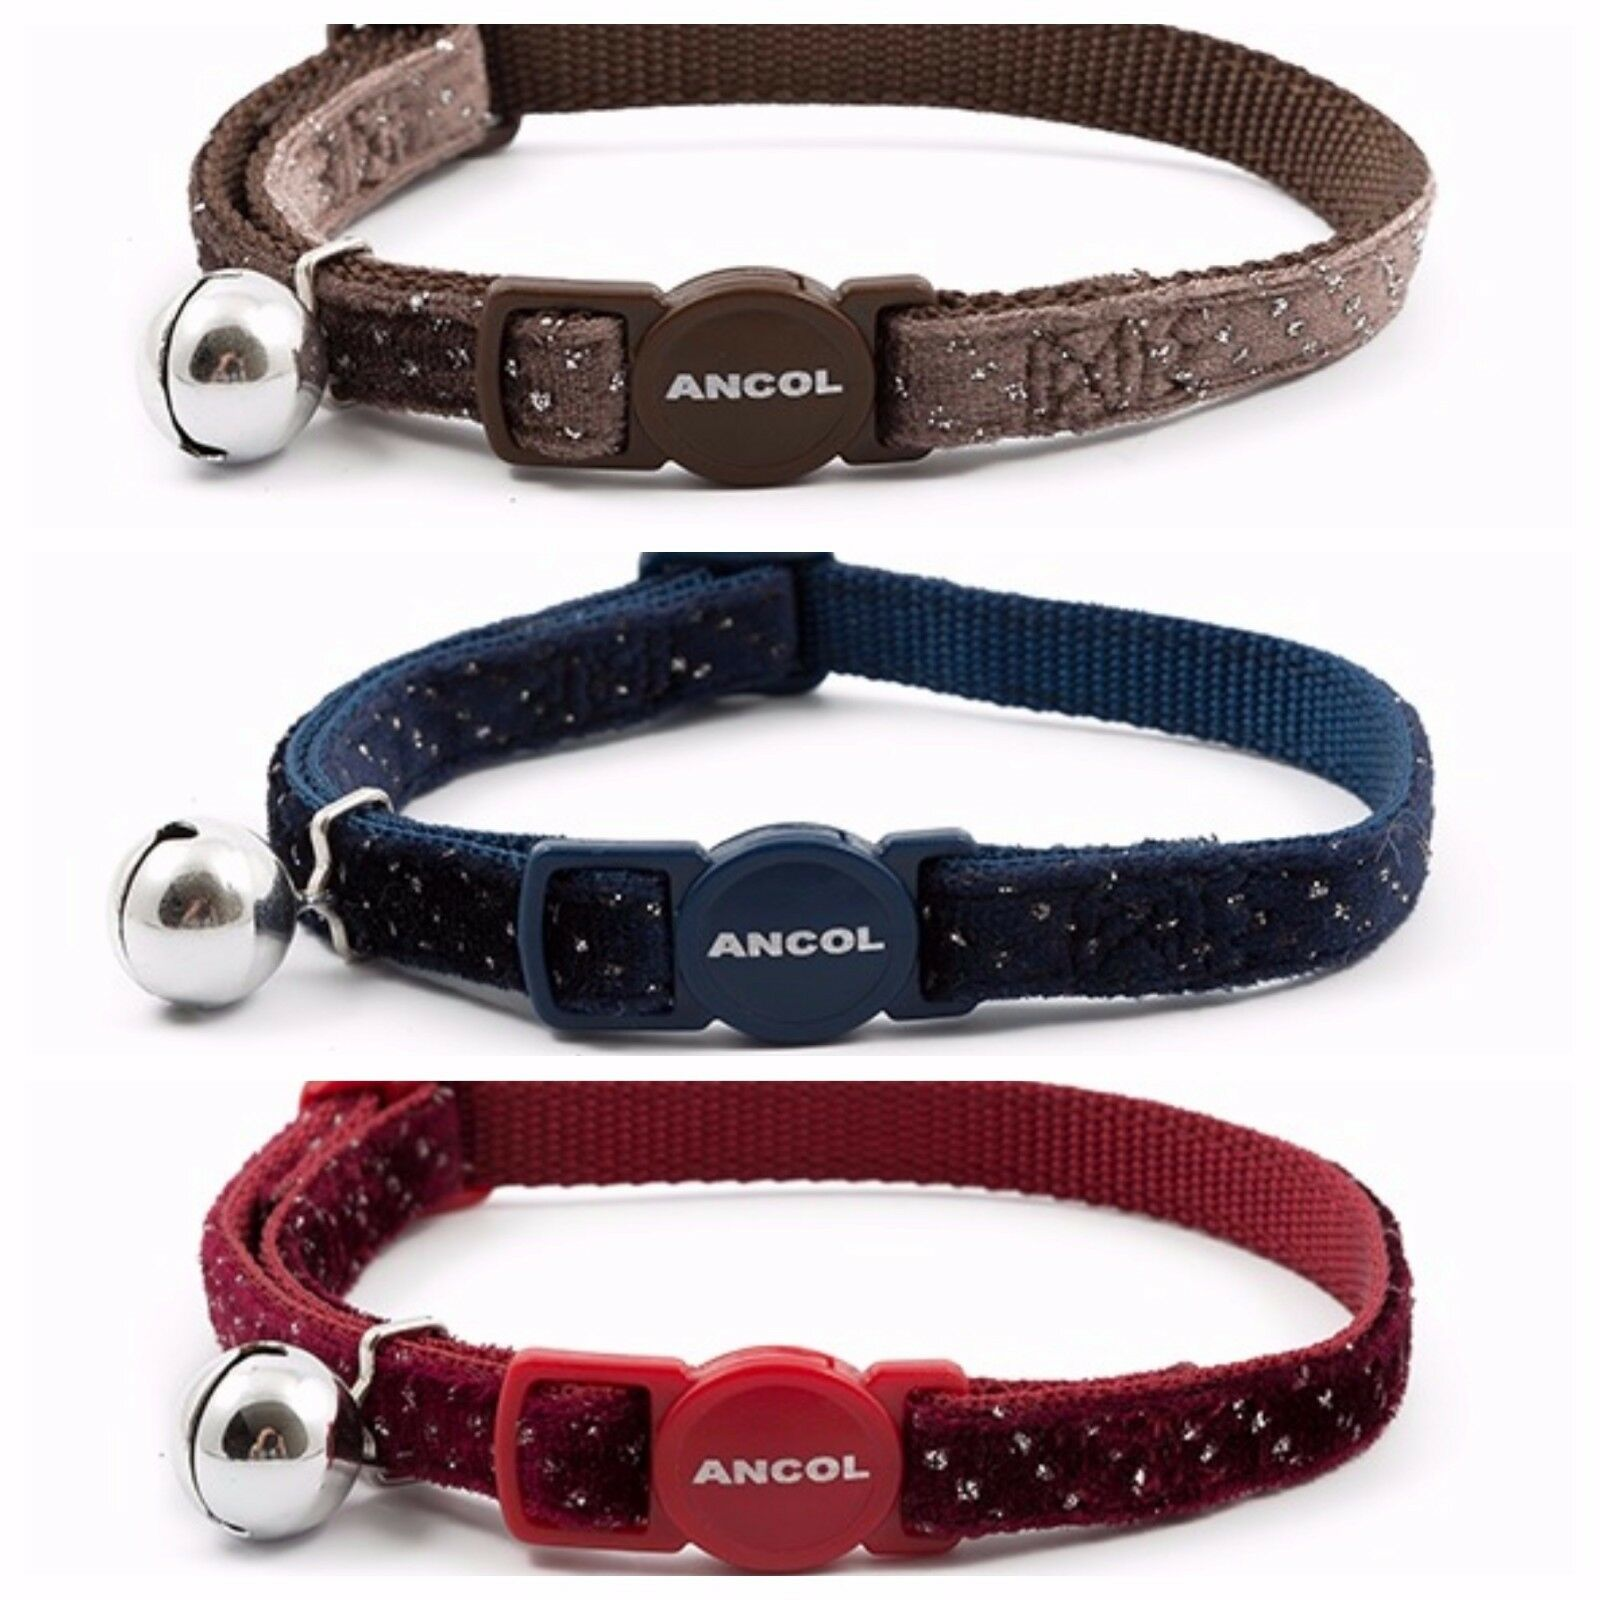 ANCOL 'NEW RANGE' VELVET SPARKLE CAT COLLAR ( With or Without Engraved ID Tag )